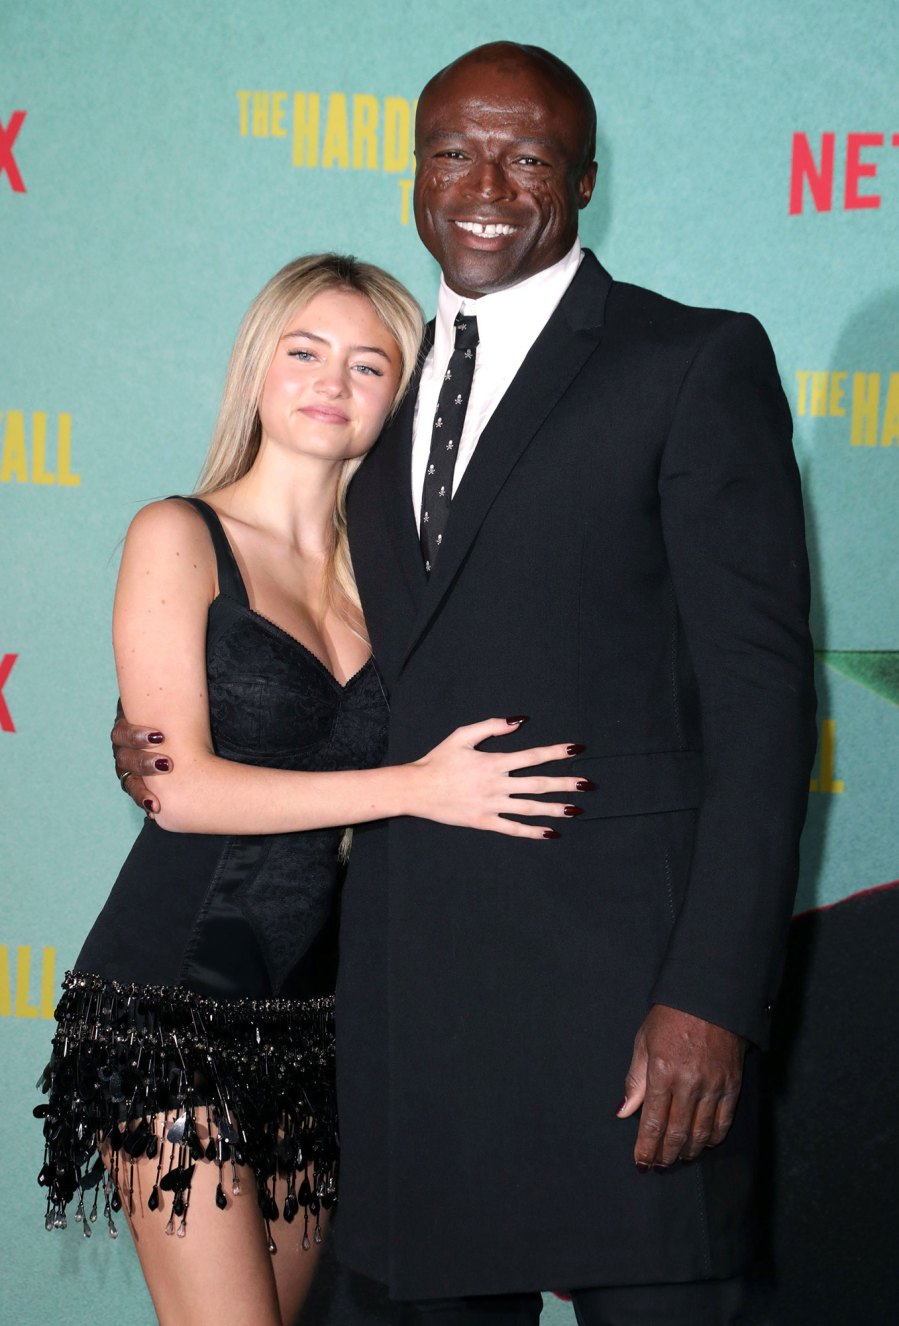 Seal and Daughter Leni Pose at The Harder They Fall Premiere 2